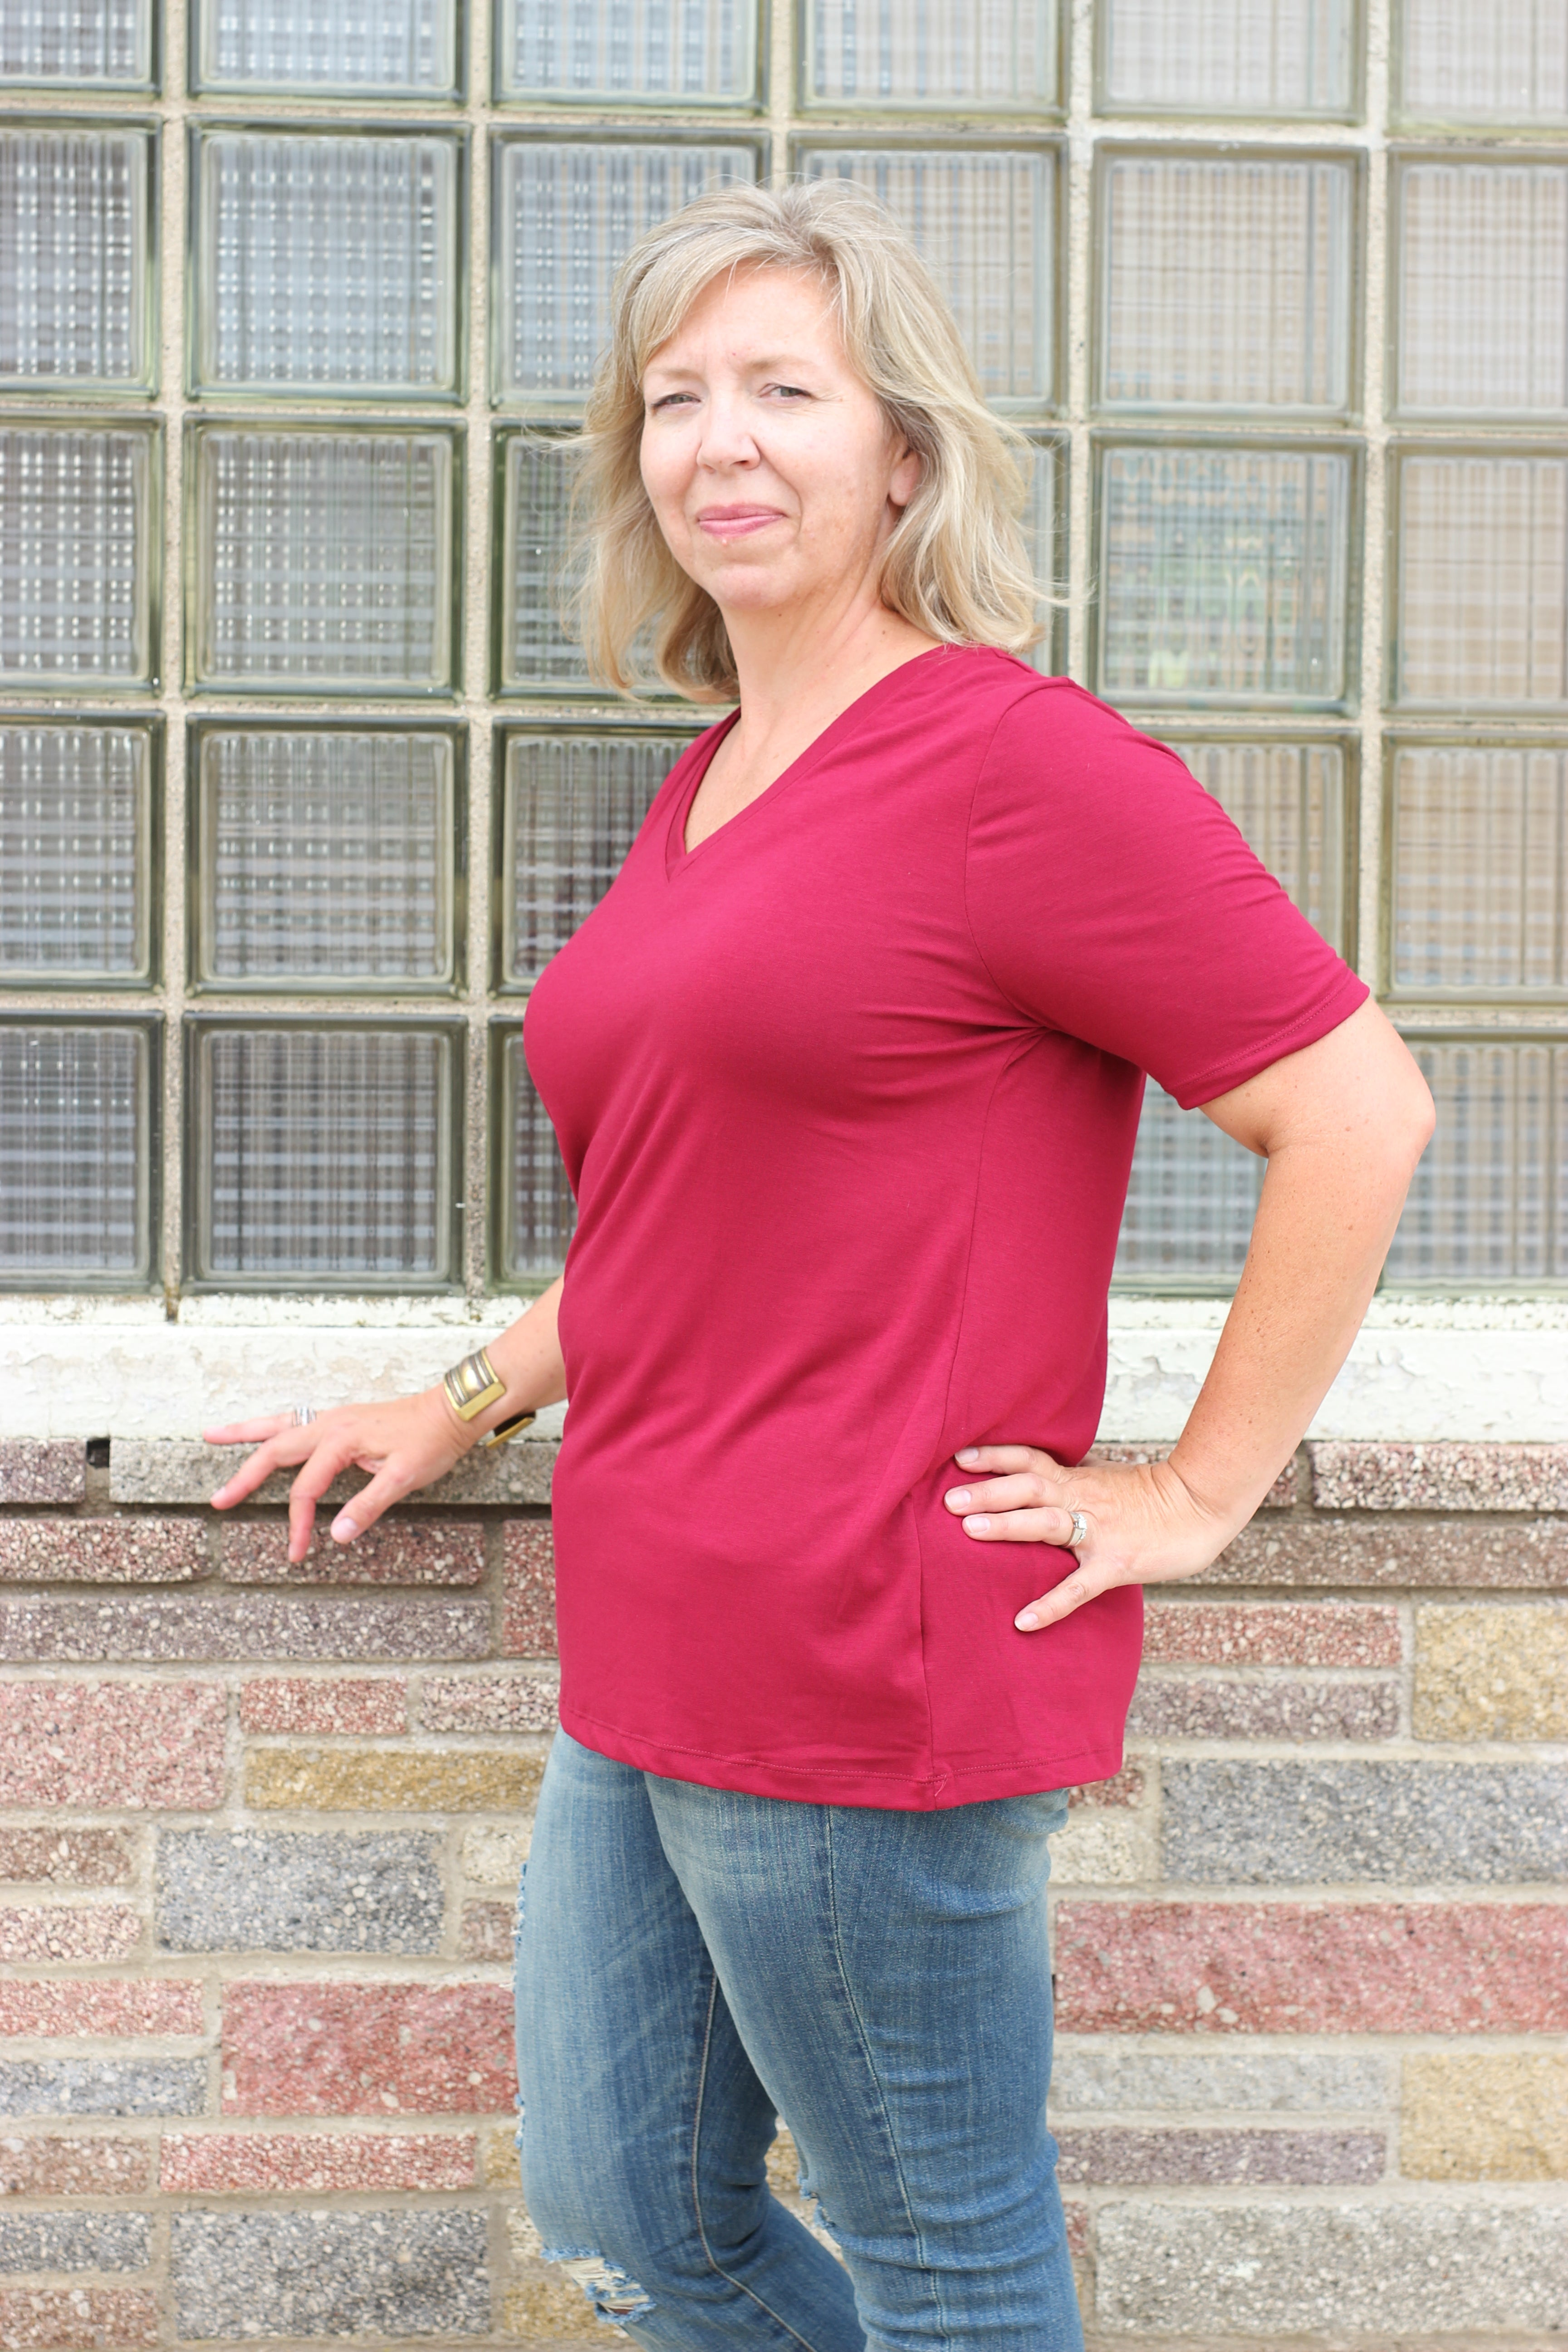 The Curvy Basic Top 2 - JQ Clothing Co. - Oakes ND